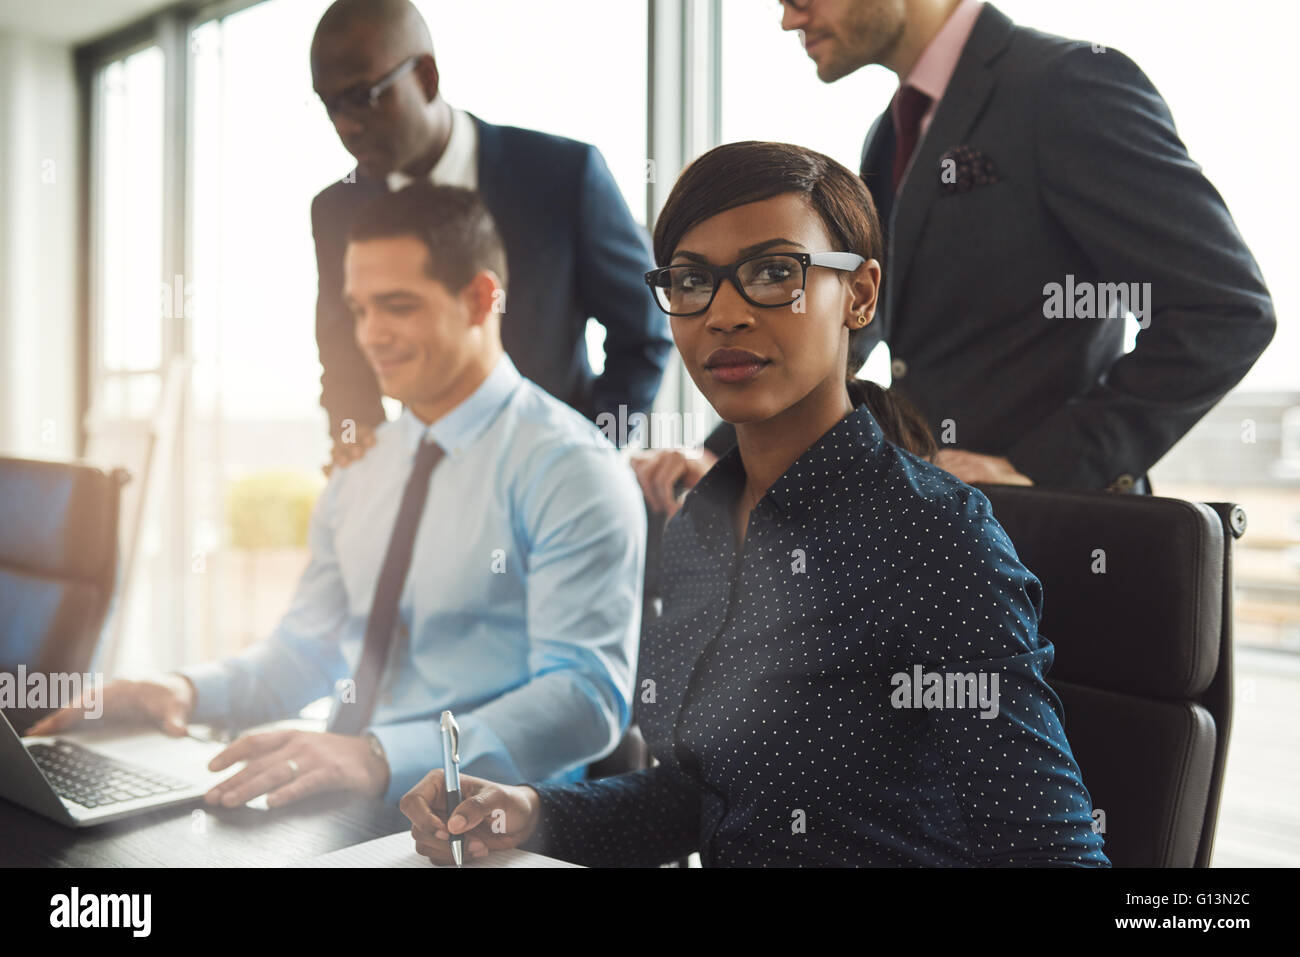 Attractive serious businesswoman wearing eyeglasses and blue blouse sitting at conference table with three male - Stock Image